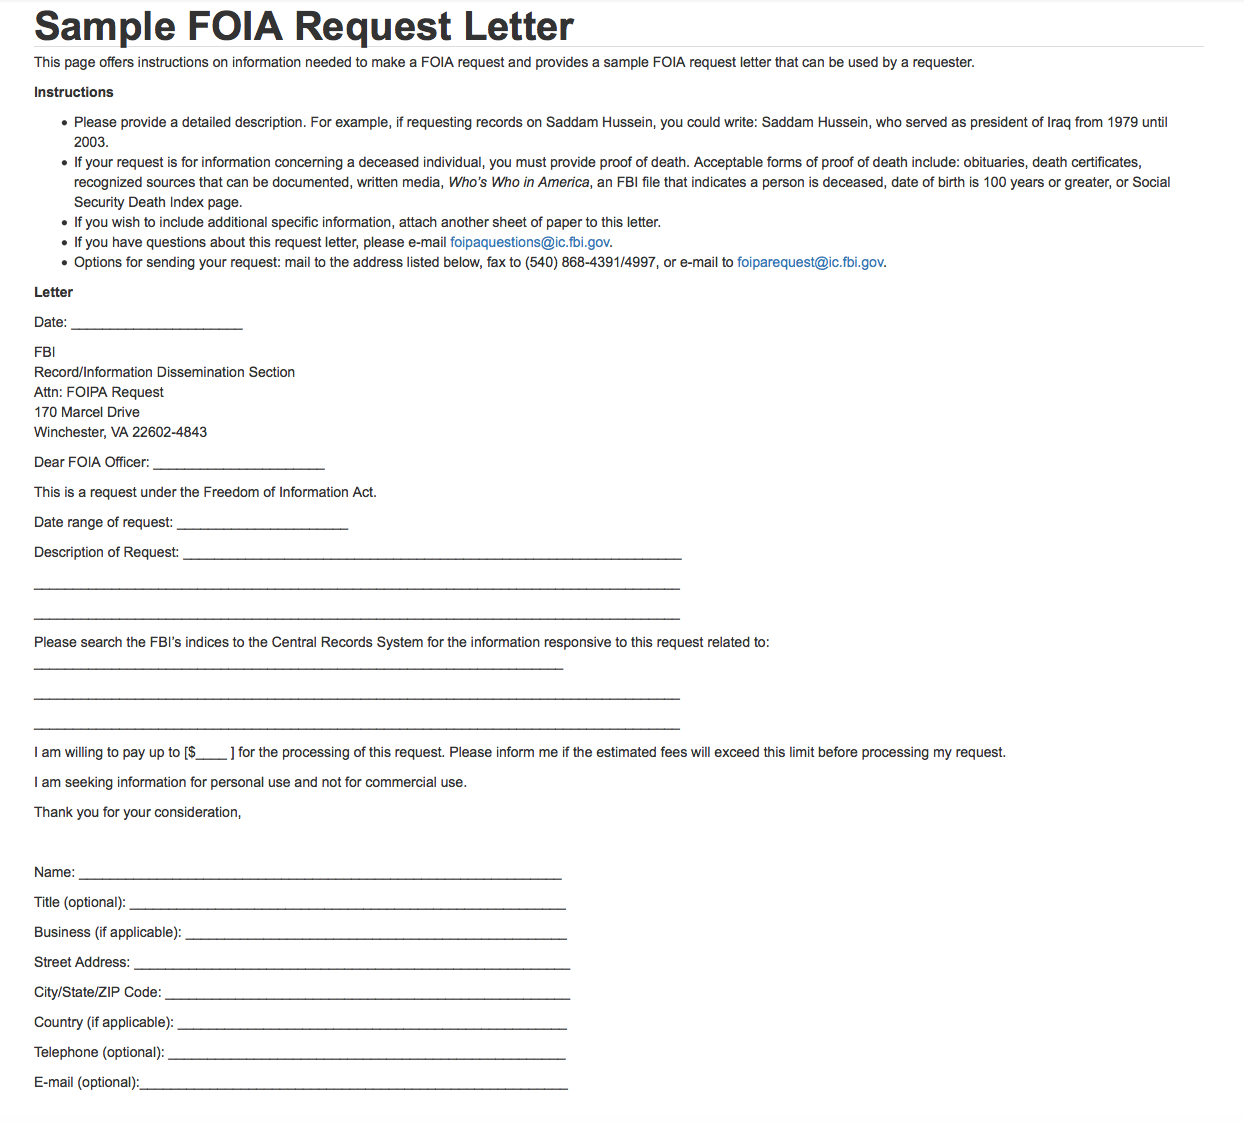 Sample foia request letter fbi spiritdancerdesigns Image collections